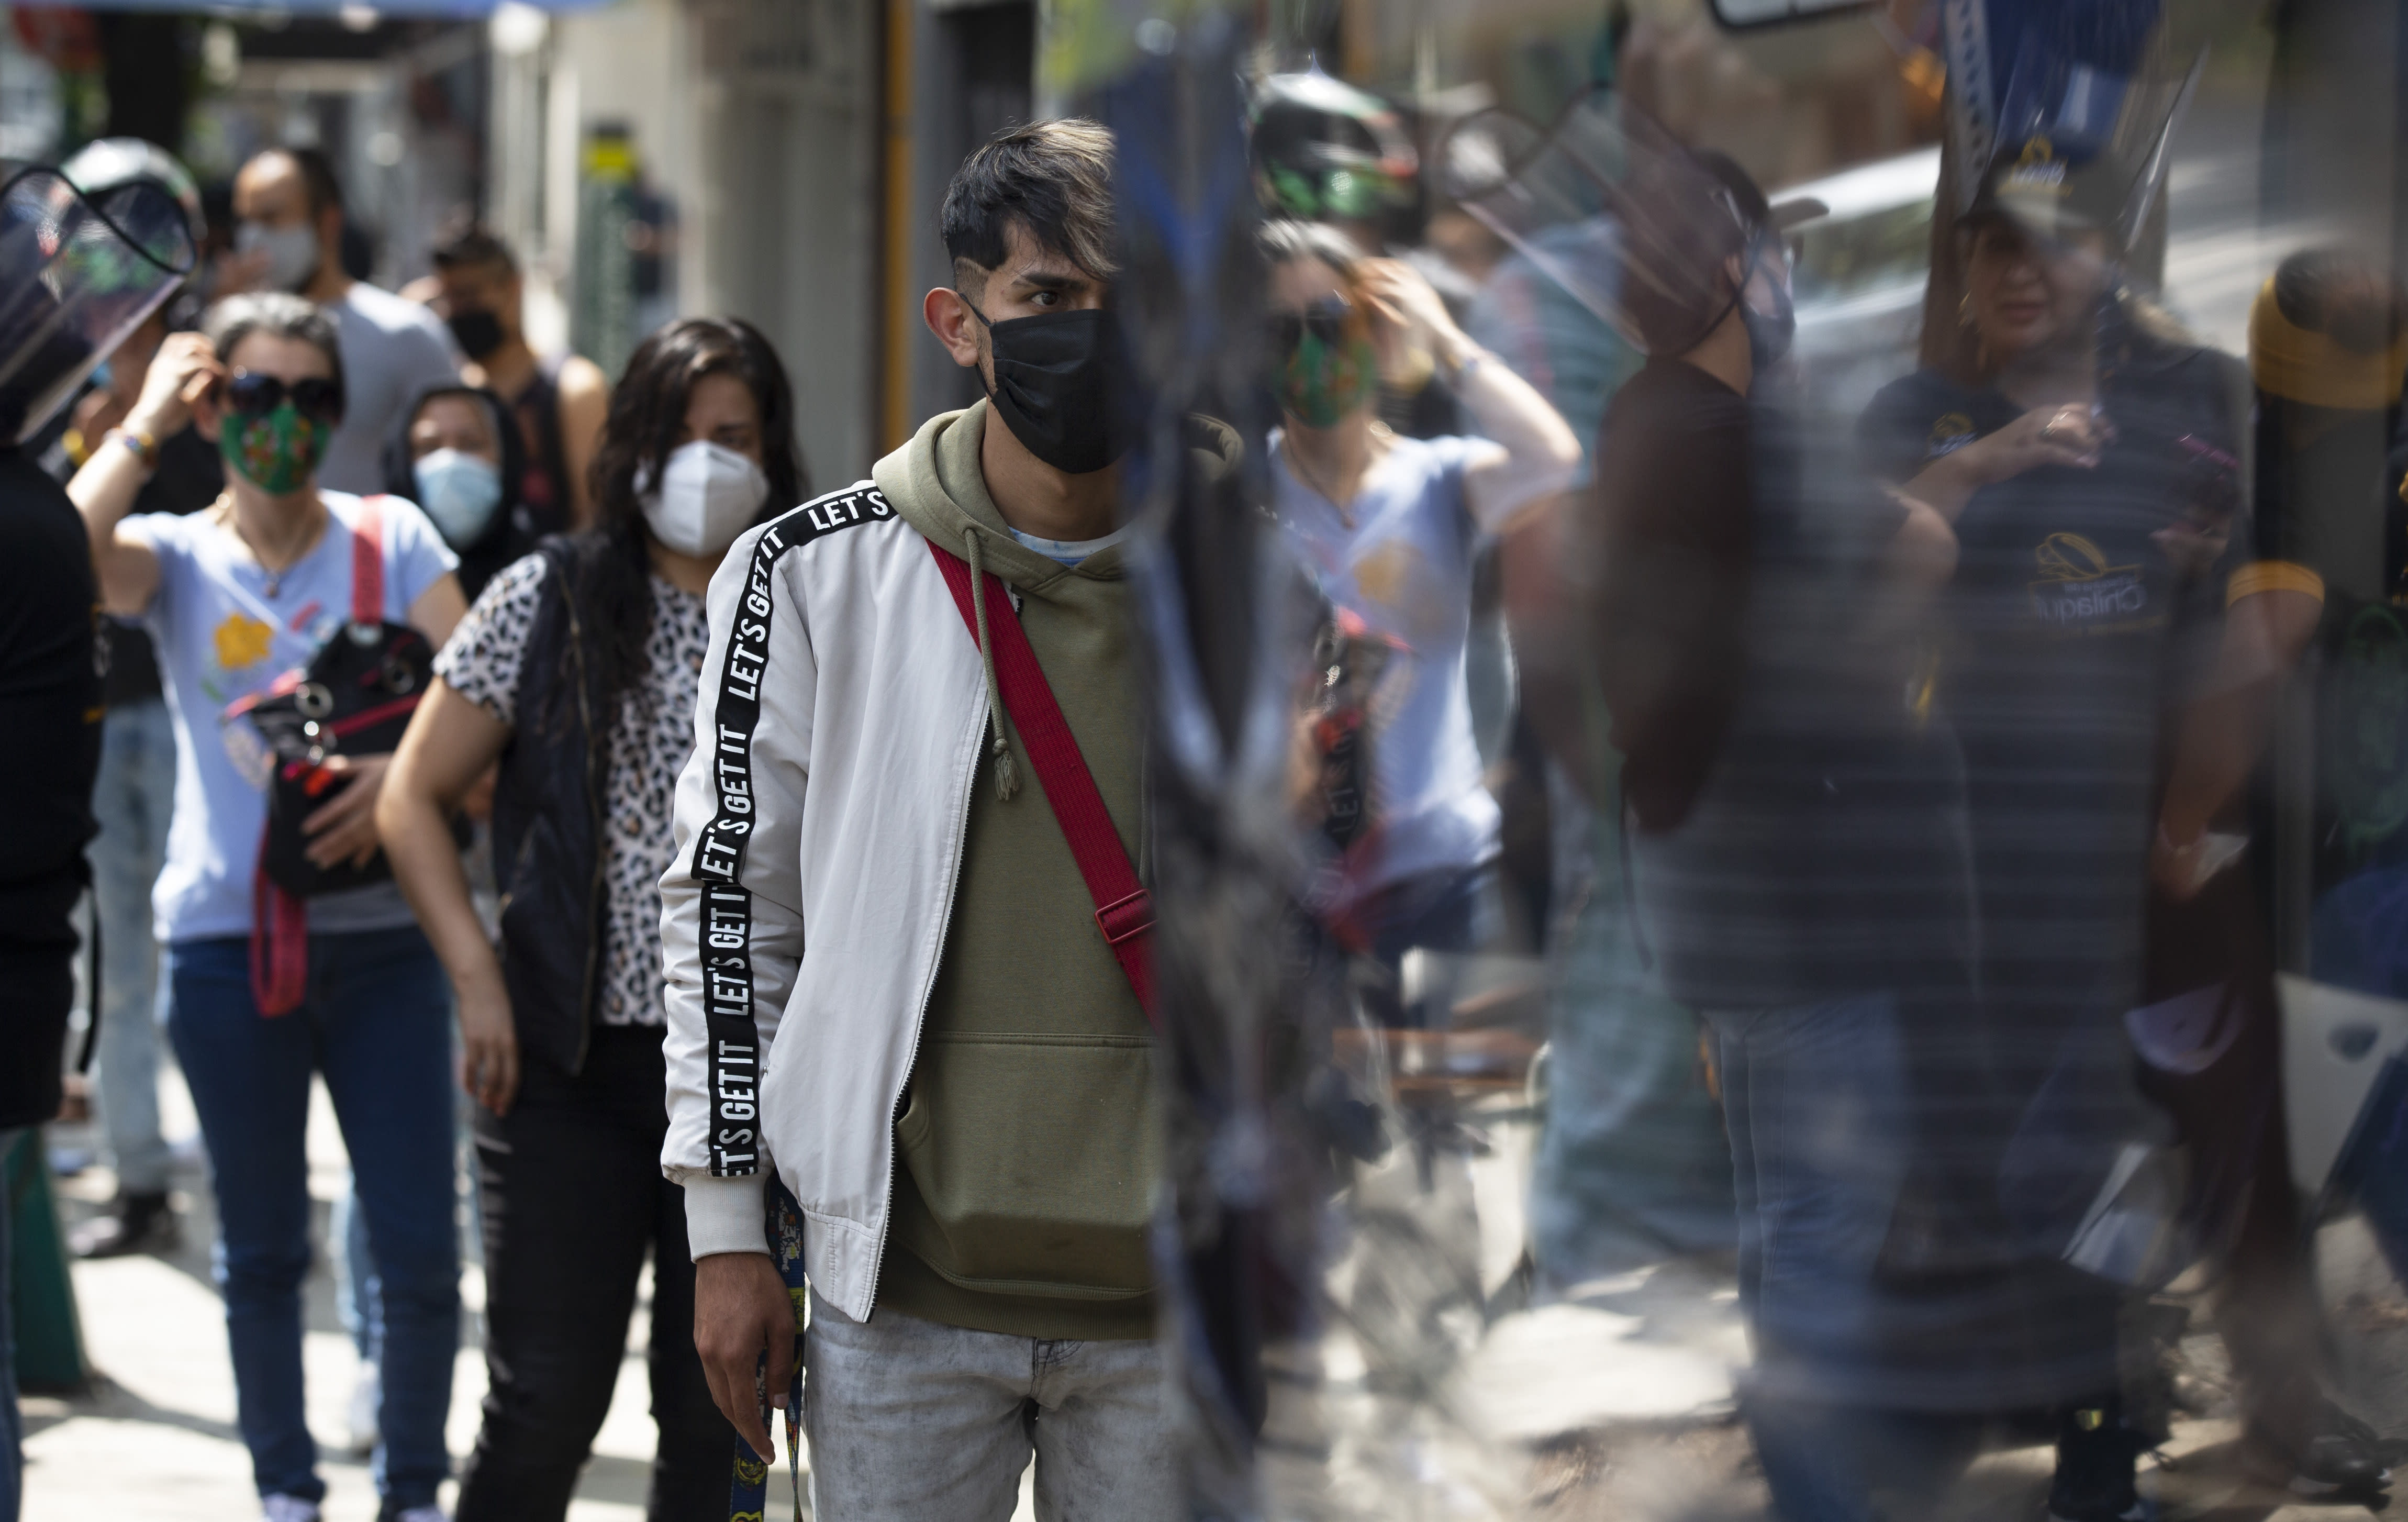 """Customers, wearing protective face masks amid the new coronavirus pandemic, stand in line at a stall selling """"torta de chilaquiles"""", in Mexico City, Saturday, Aug. 1, 2020. Mexico has imposed a very lax and partial lockdown of economic activity that has not stopped high levels of contagion, but has strangled the economy. (AP Photo/Marco Ugarte)"""